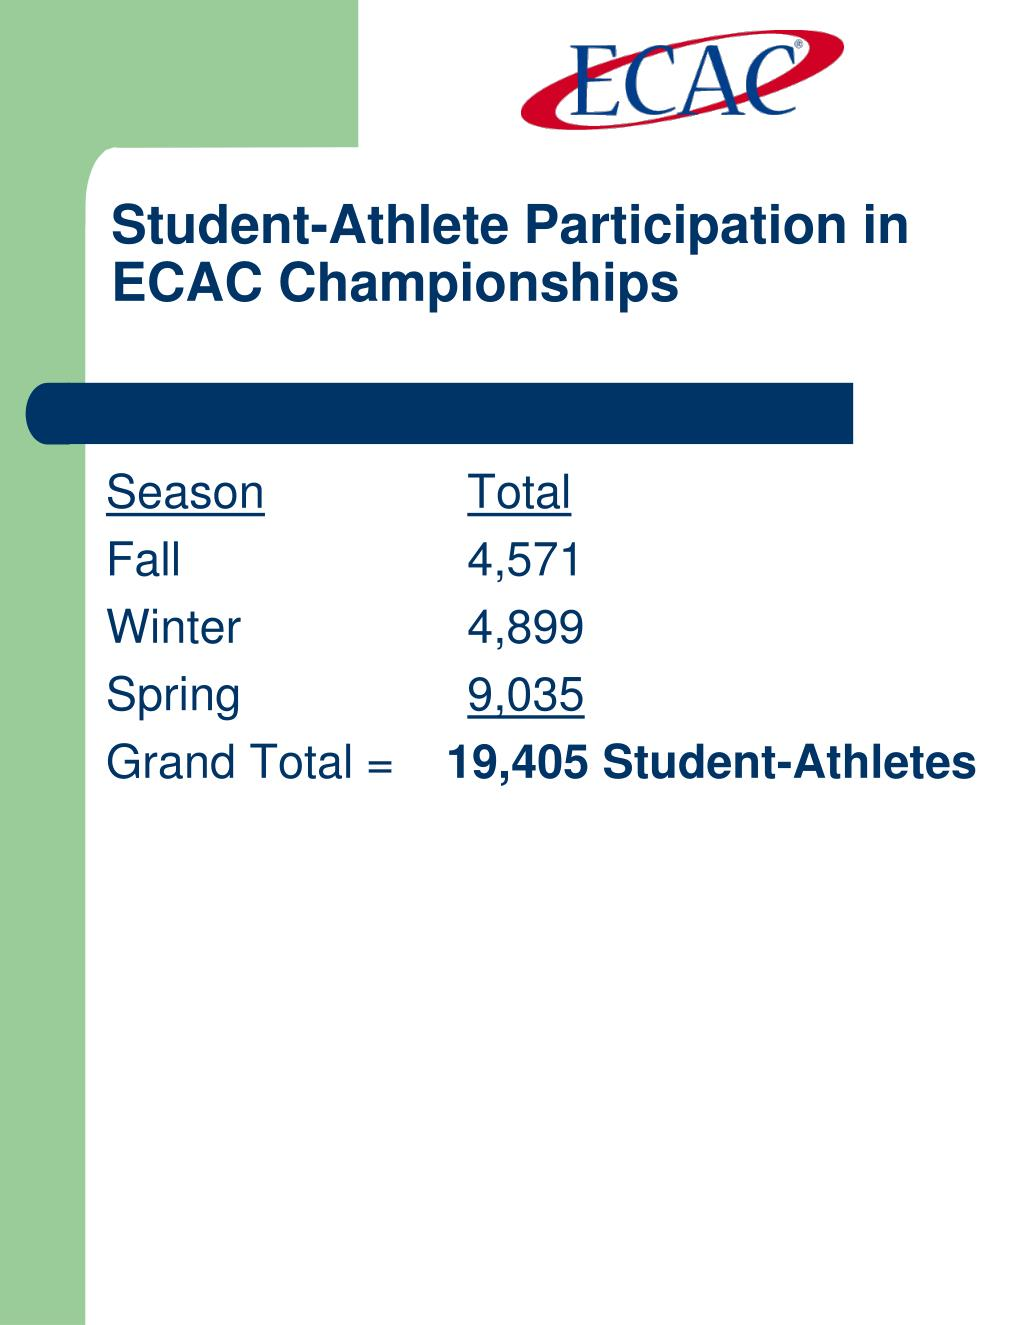 Student-Athlete Participation in ECAC Championships